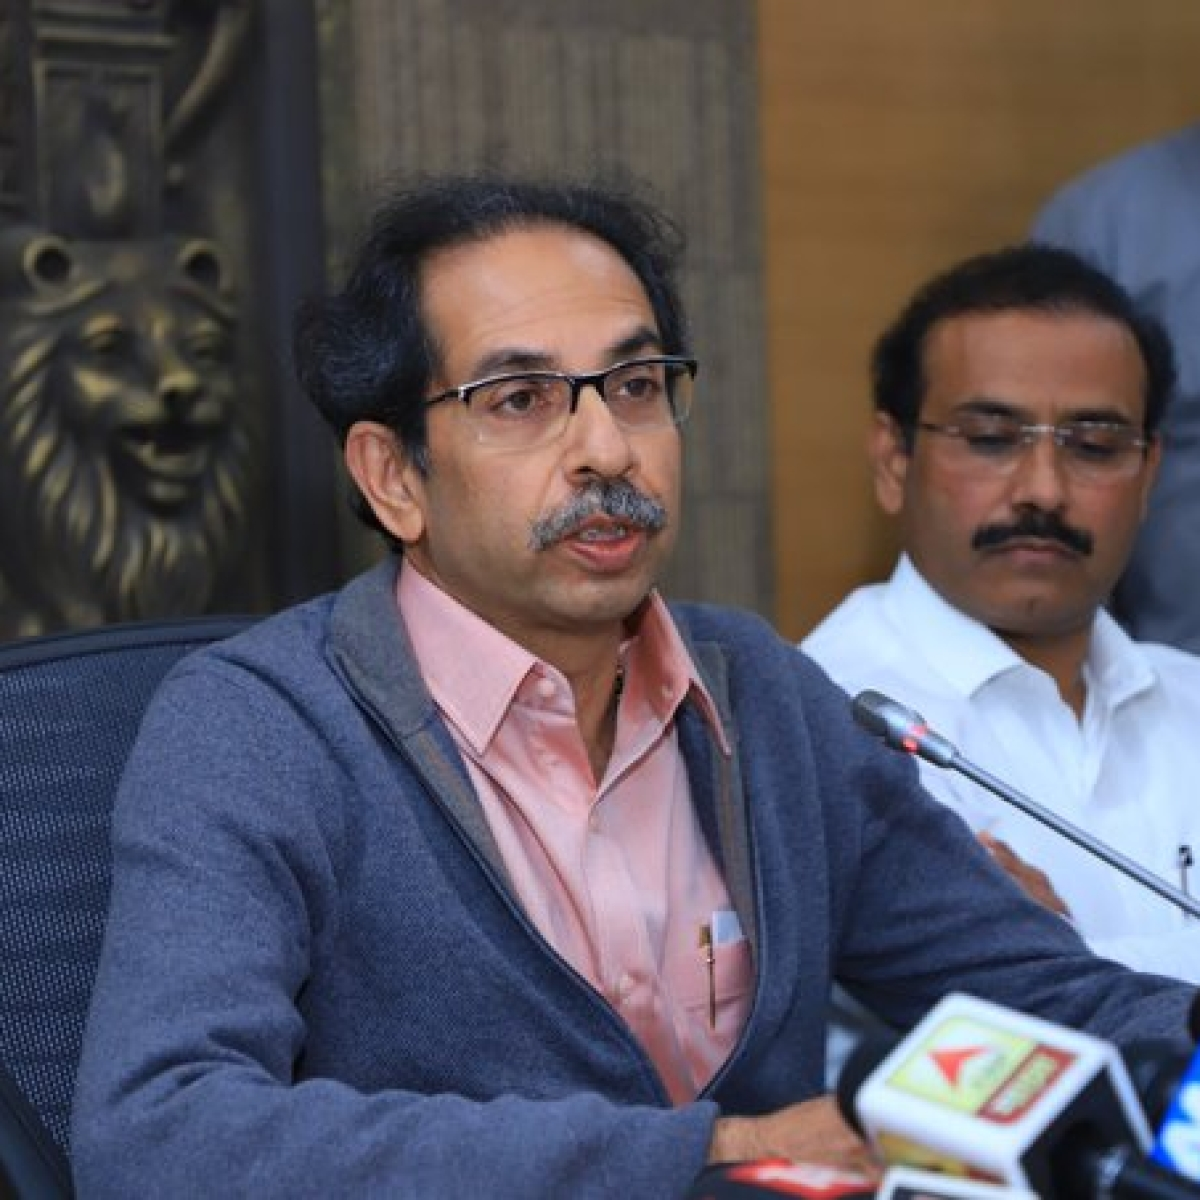 Uddhav Thackeray-led Maha Govt increases honorarium for doctors on contract and bond